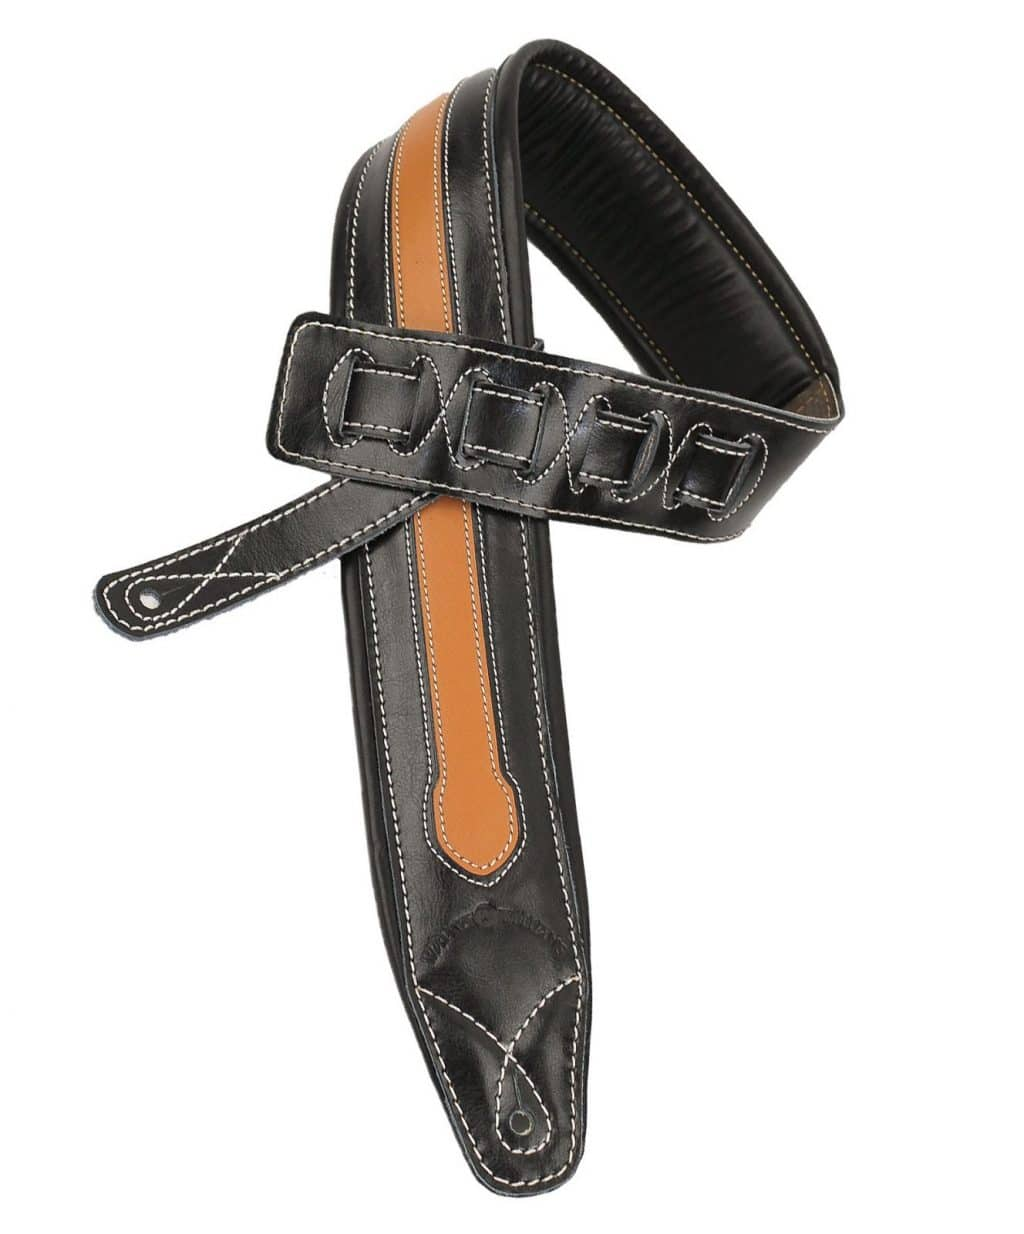 C 34 Tn Black And Tan Double Padded Premium Leather Strap